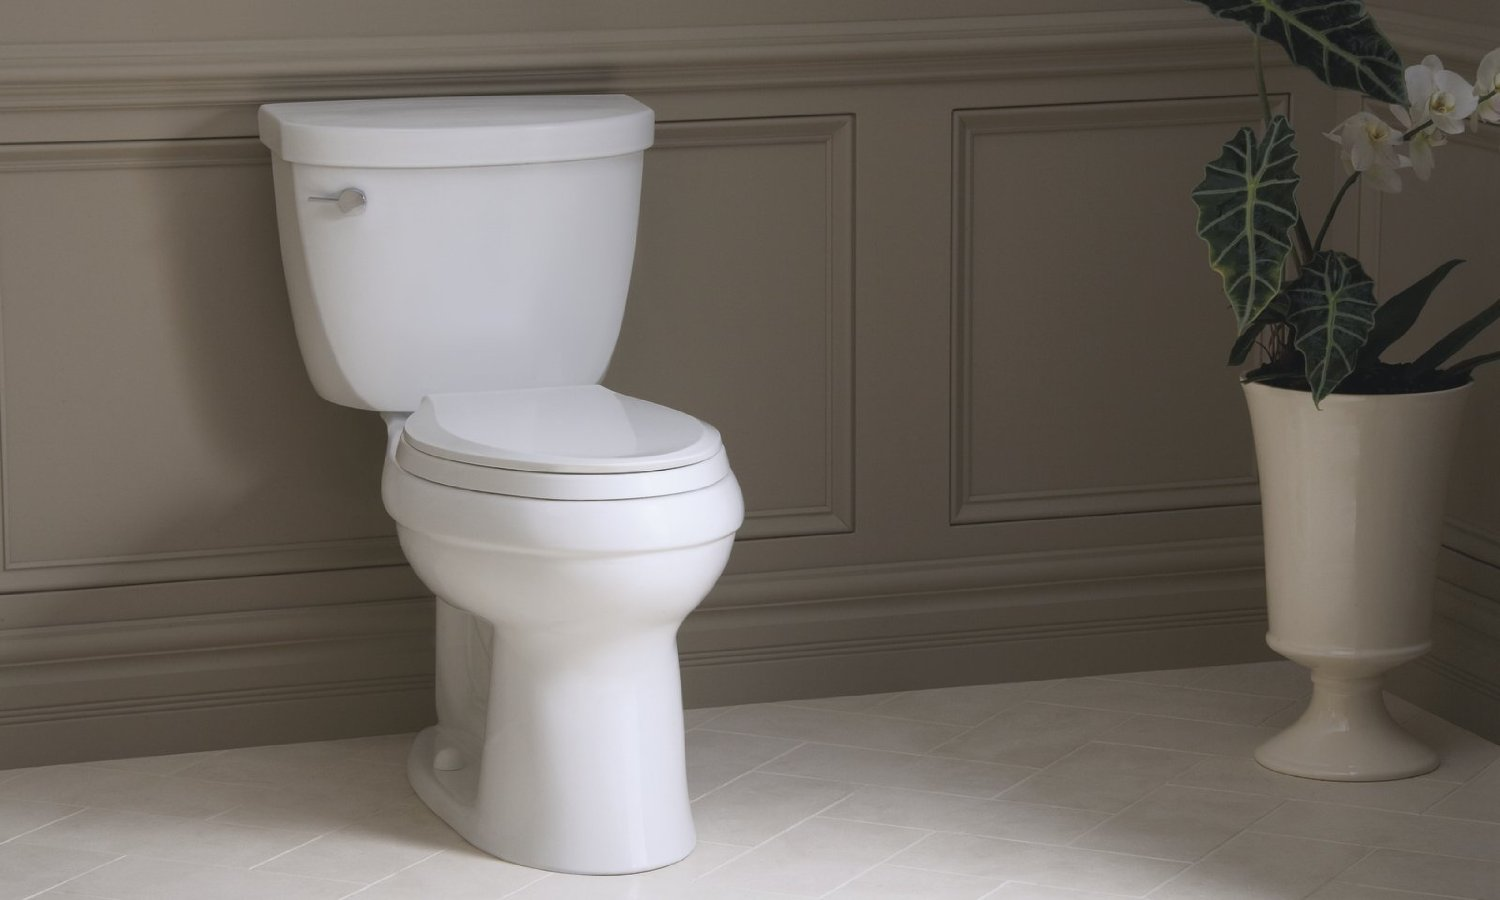 The Negative Reviews Are Mostly Due To Shipping Damage And Leaks Around Toilets Base However Is Not A Fault With Toilet